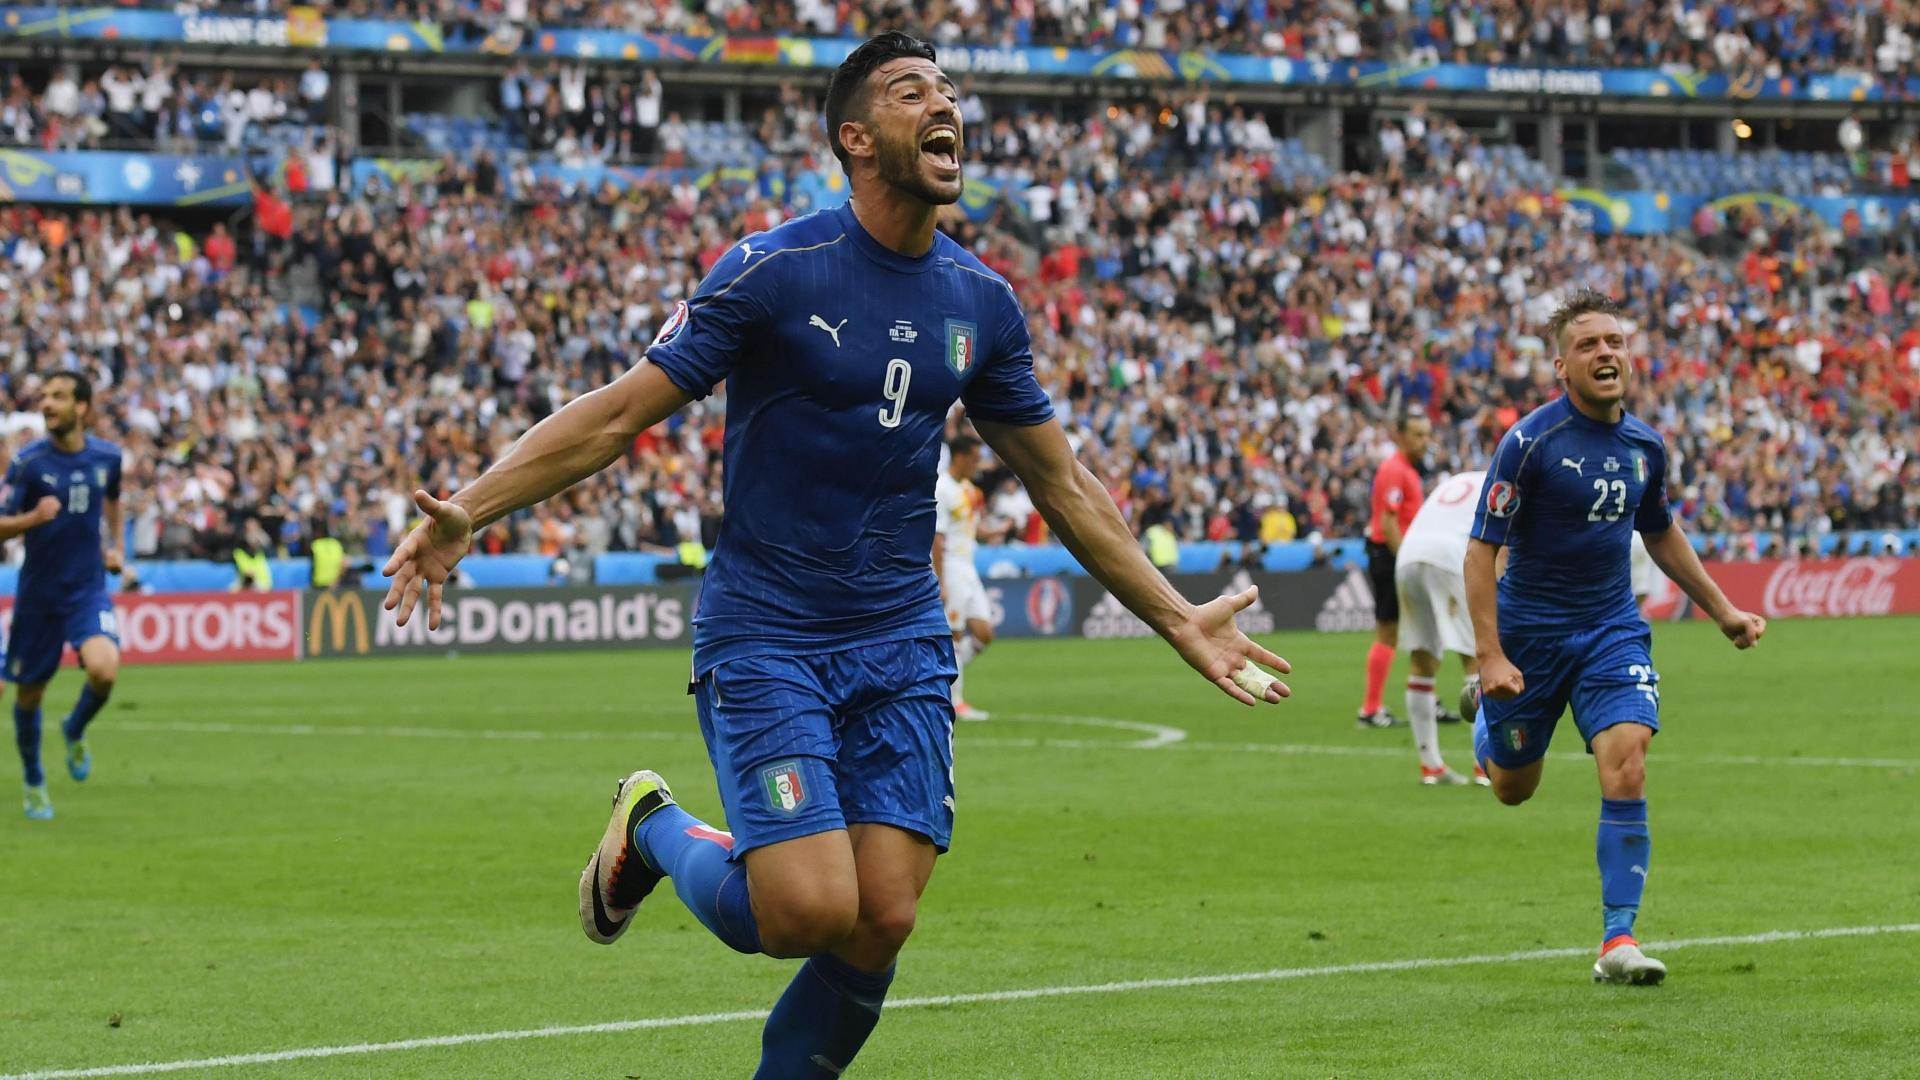 Italy advances to play Germany